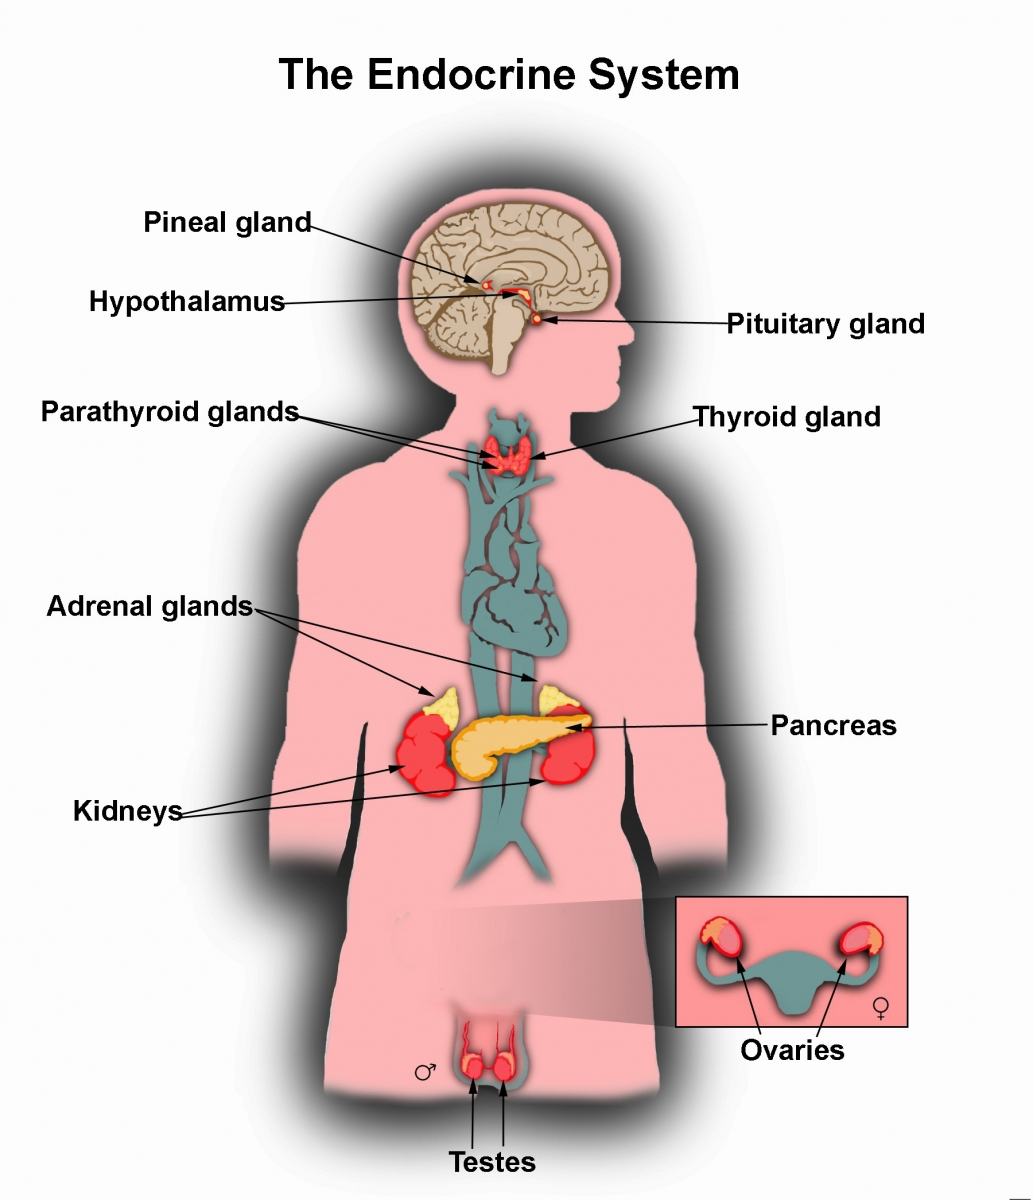 an overview of the foundations of the endocrine system of human anatomy in biology